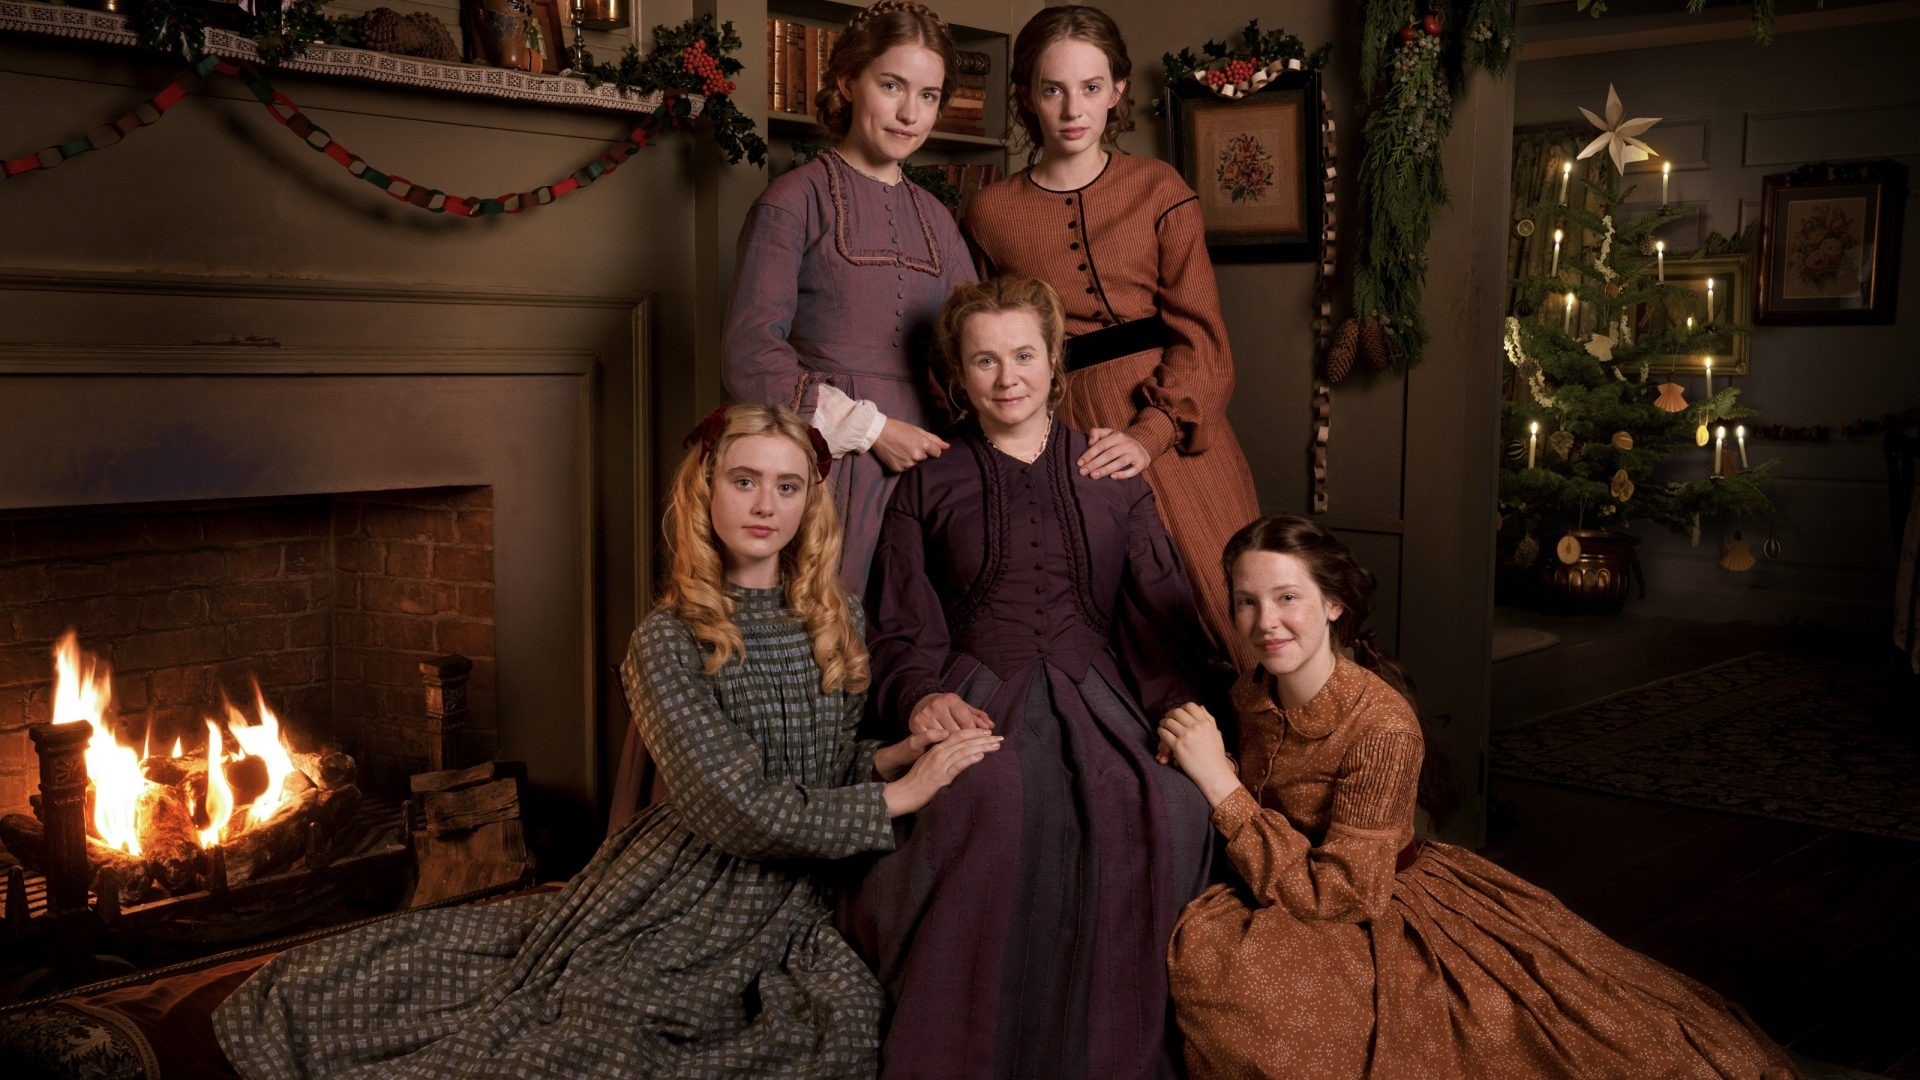 Image - little women pbs.jpg